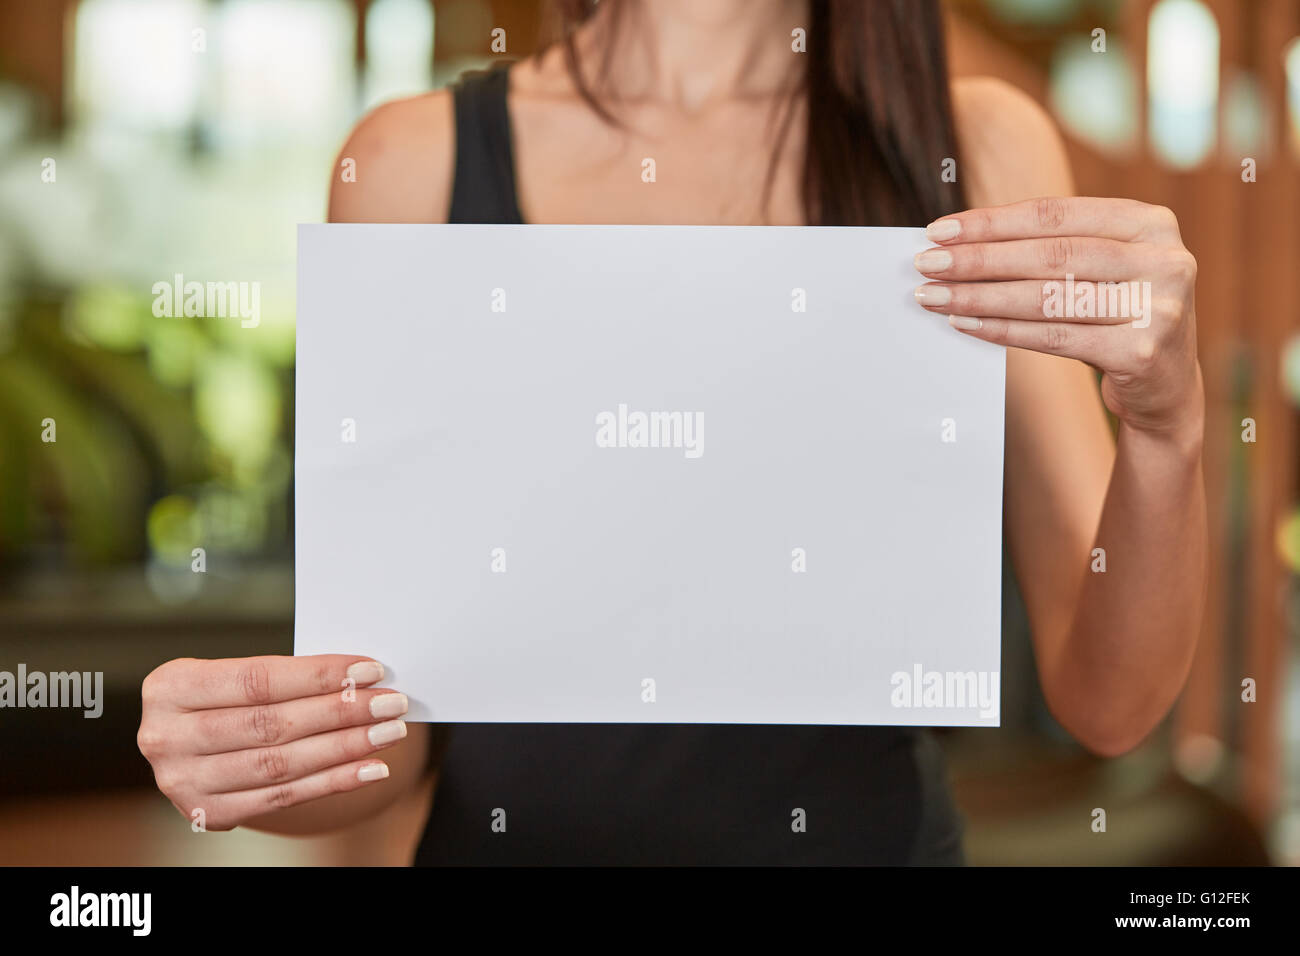 Young caucasian woman holding white sheet of paper - Stock Image